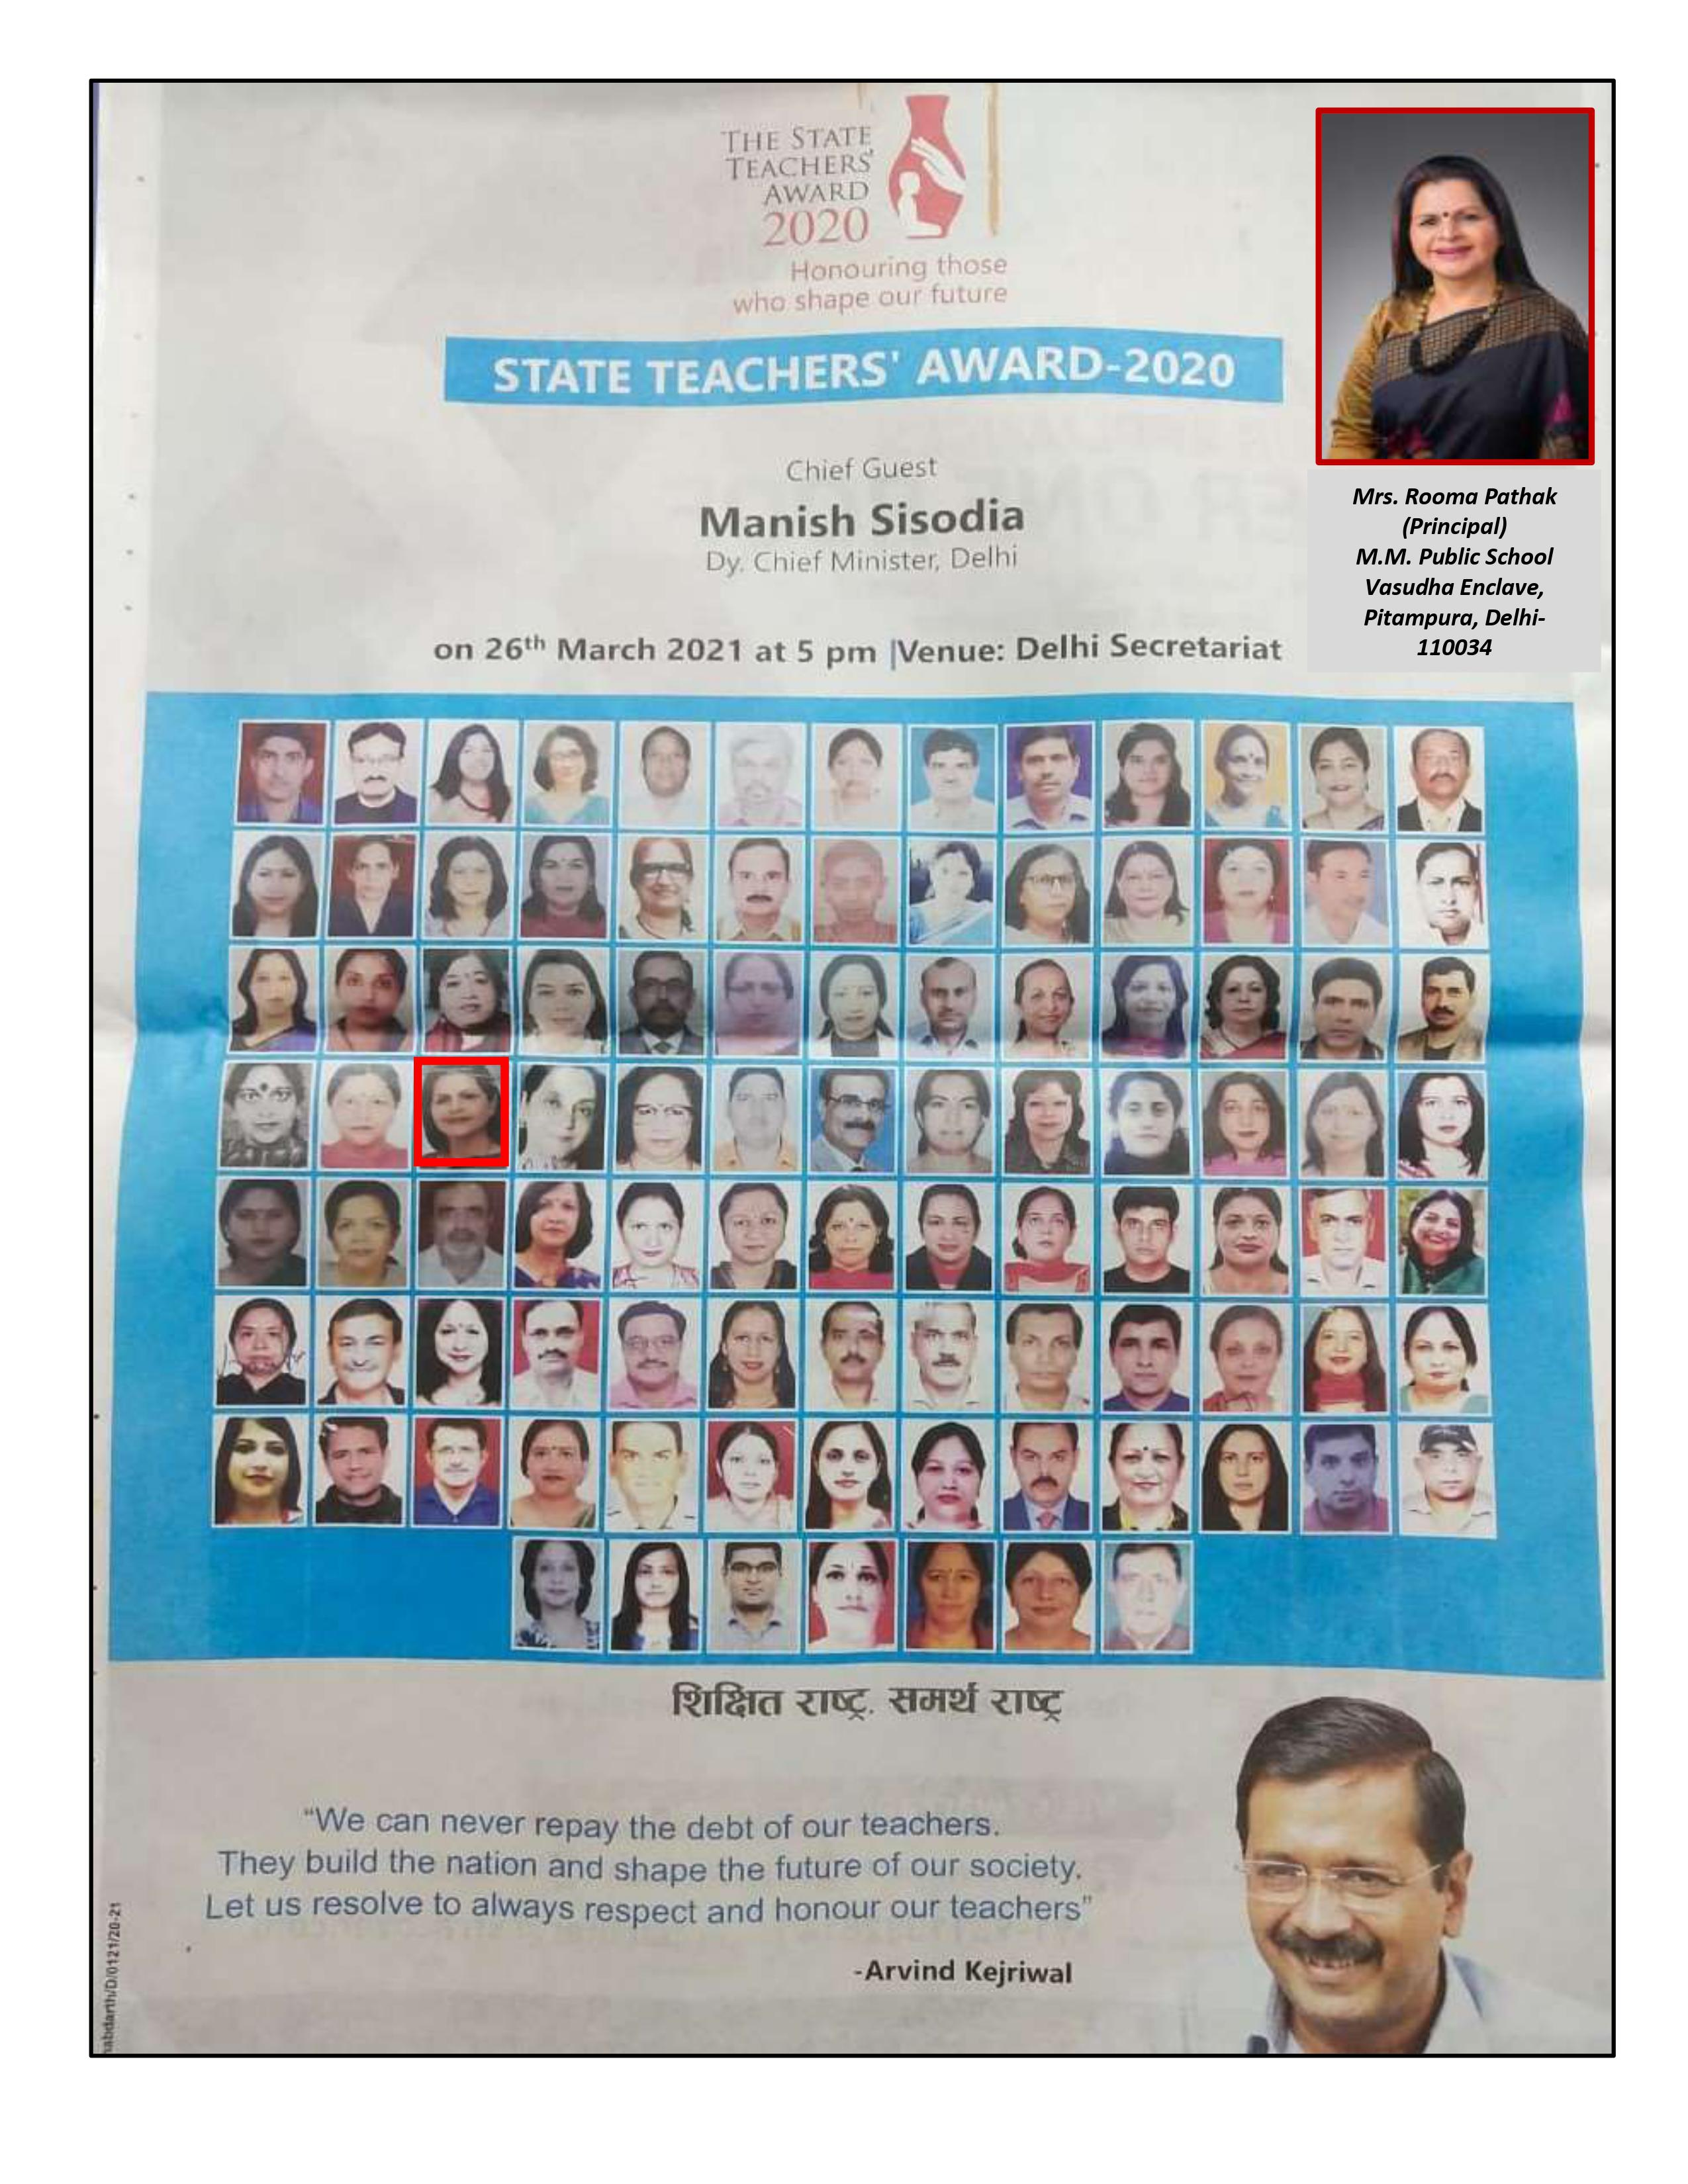 Being Honoured with THE STATE TEACHERS' AWARD 2020